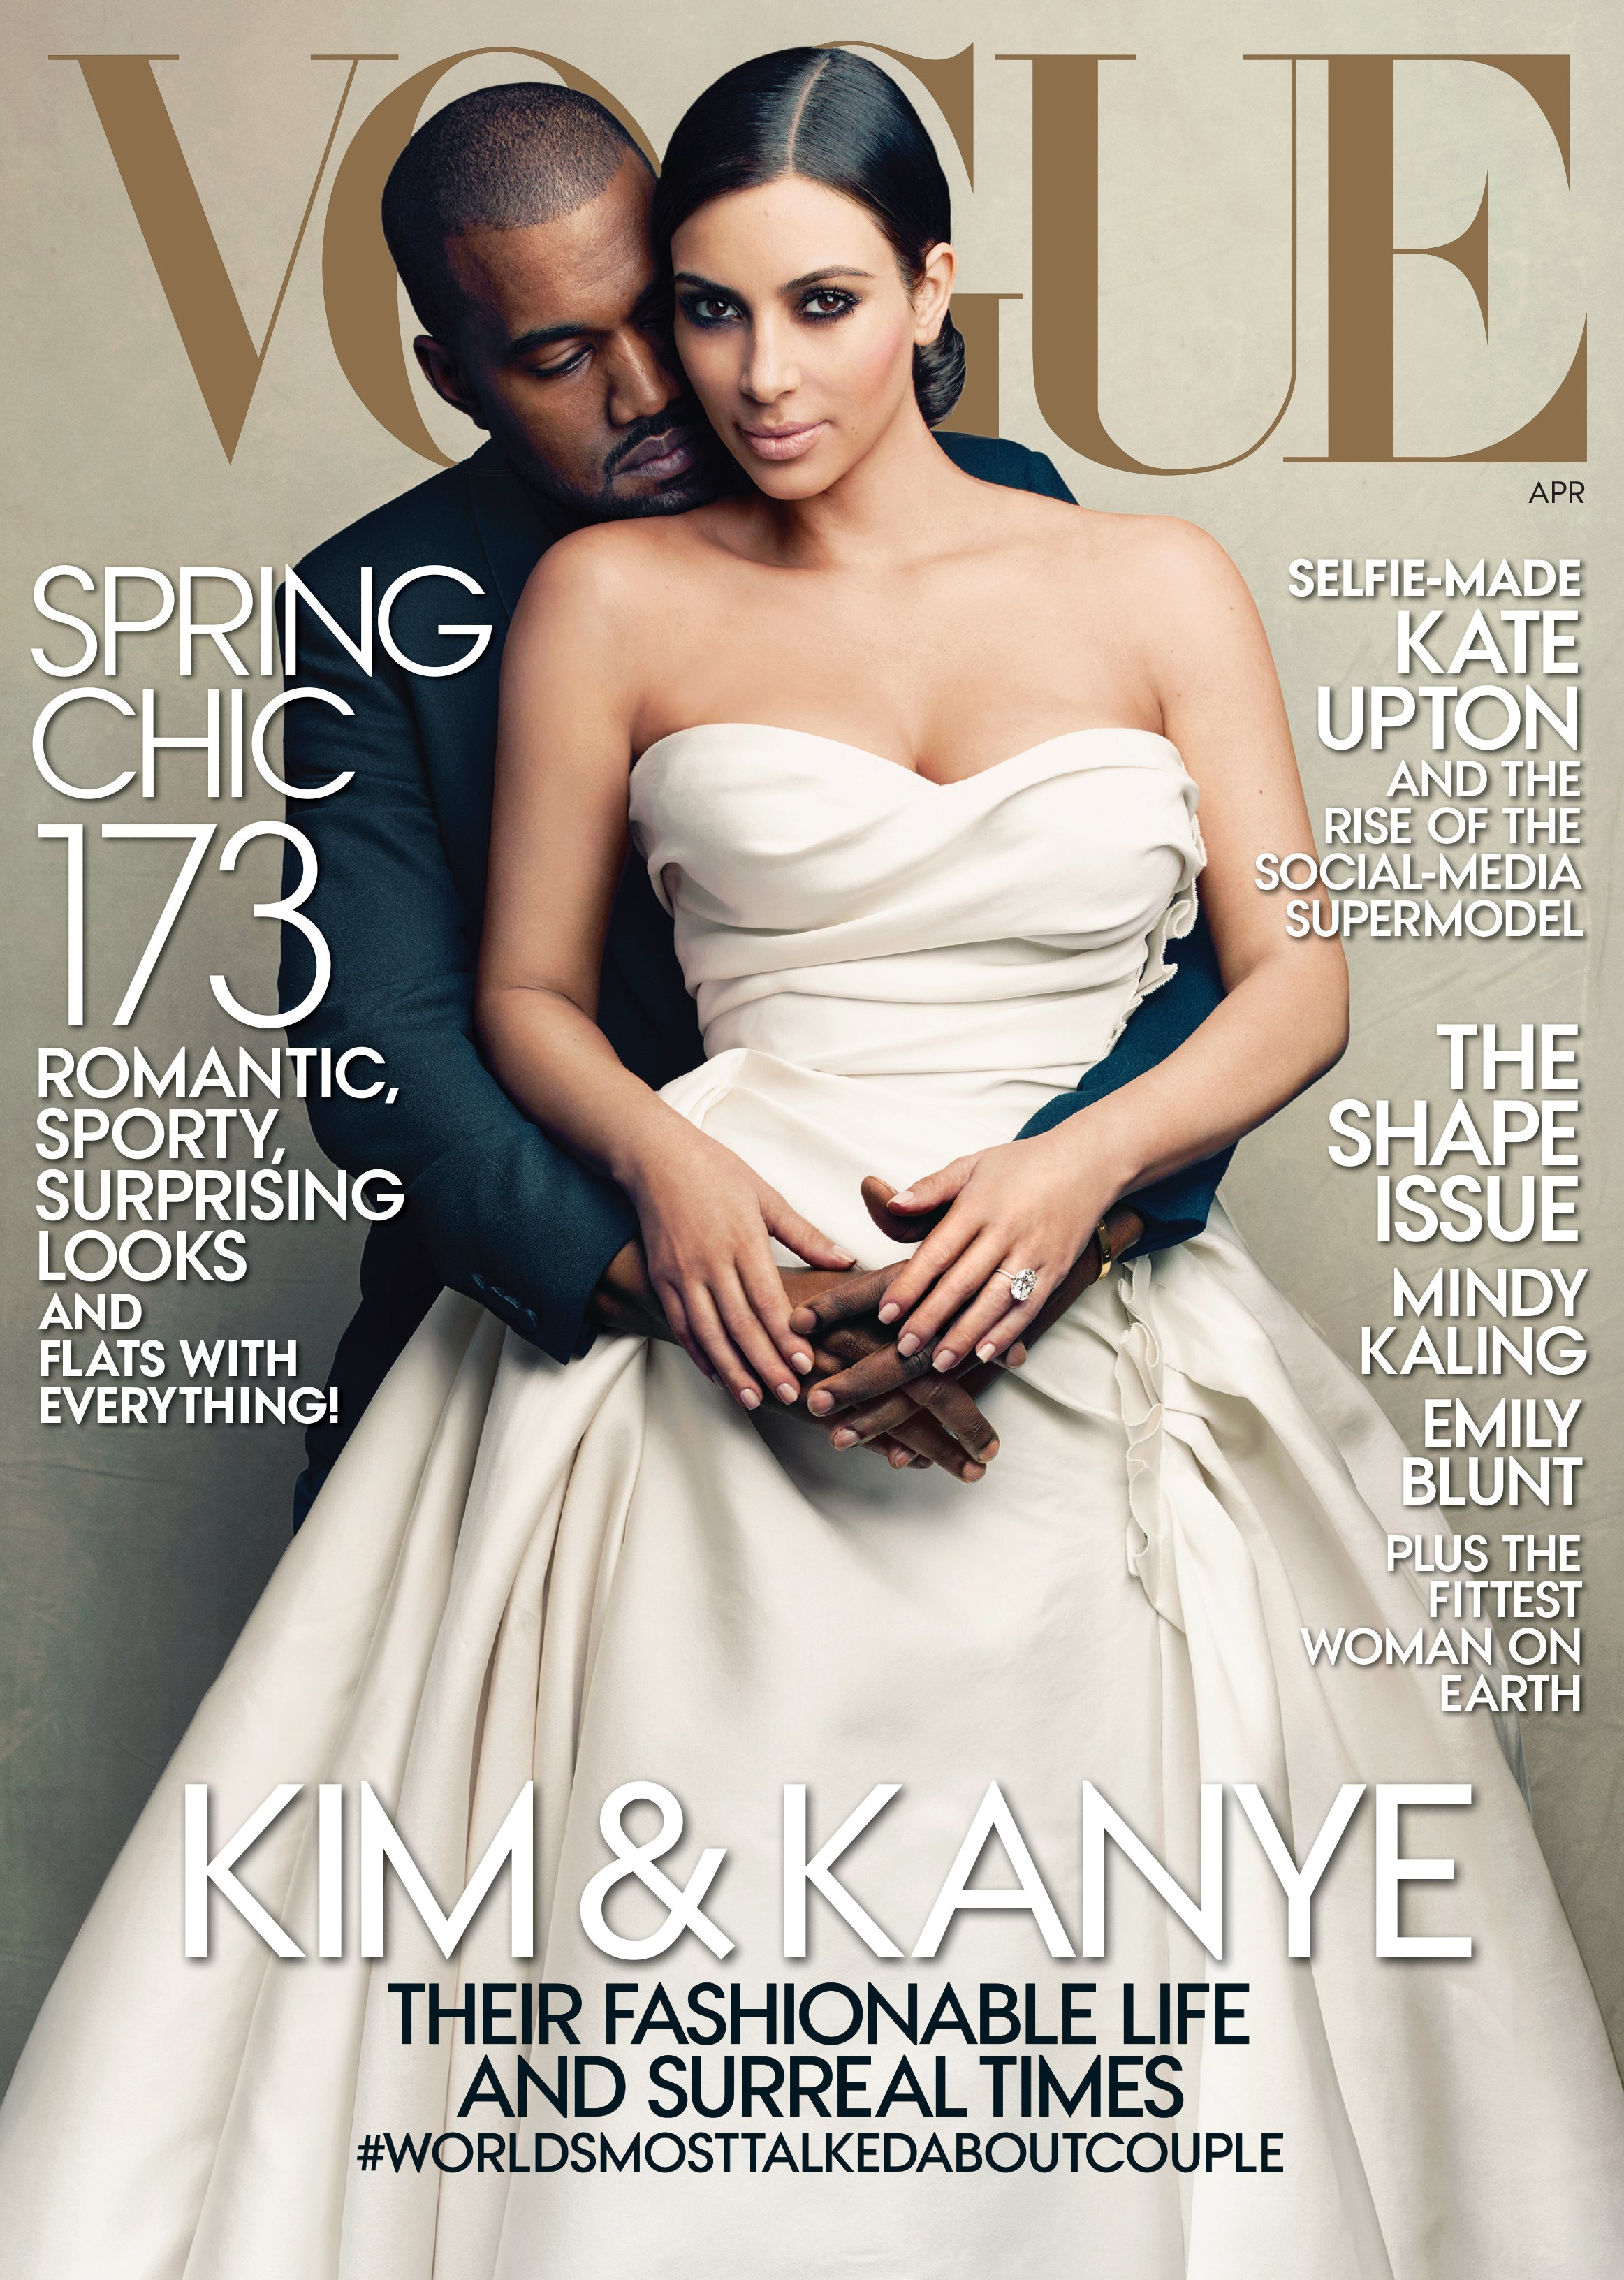 Kimye set their wedding date in March and celebrated on the cover of <i>Vogue</i>.